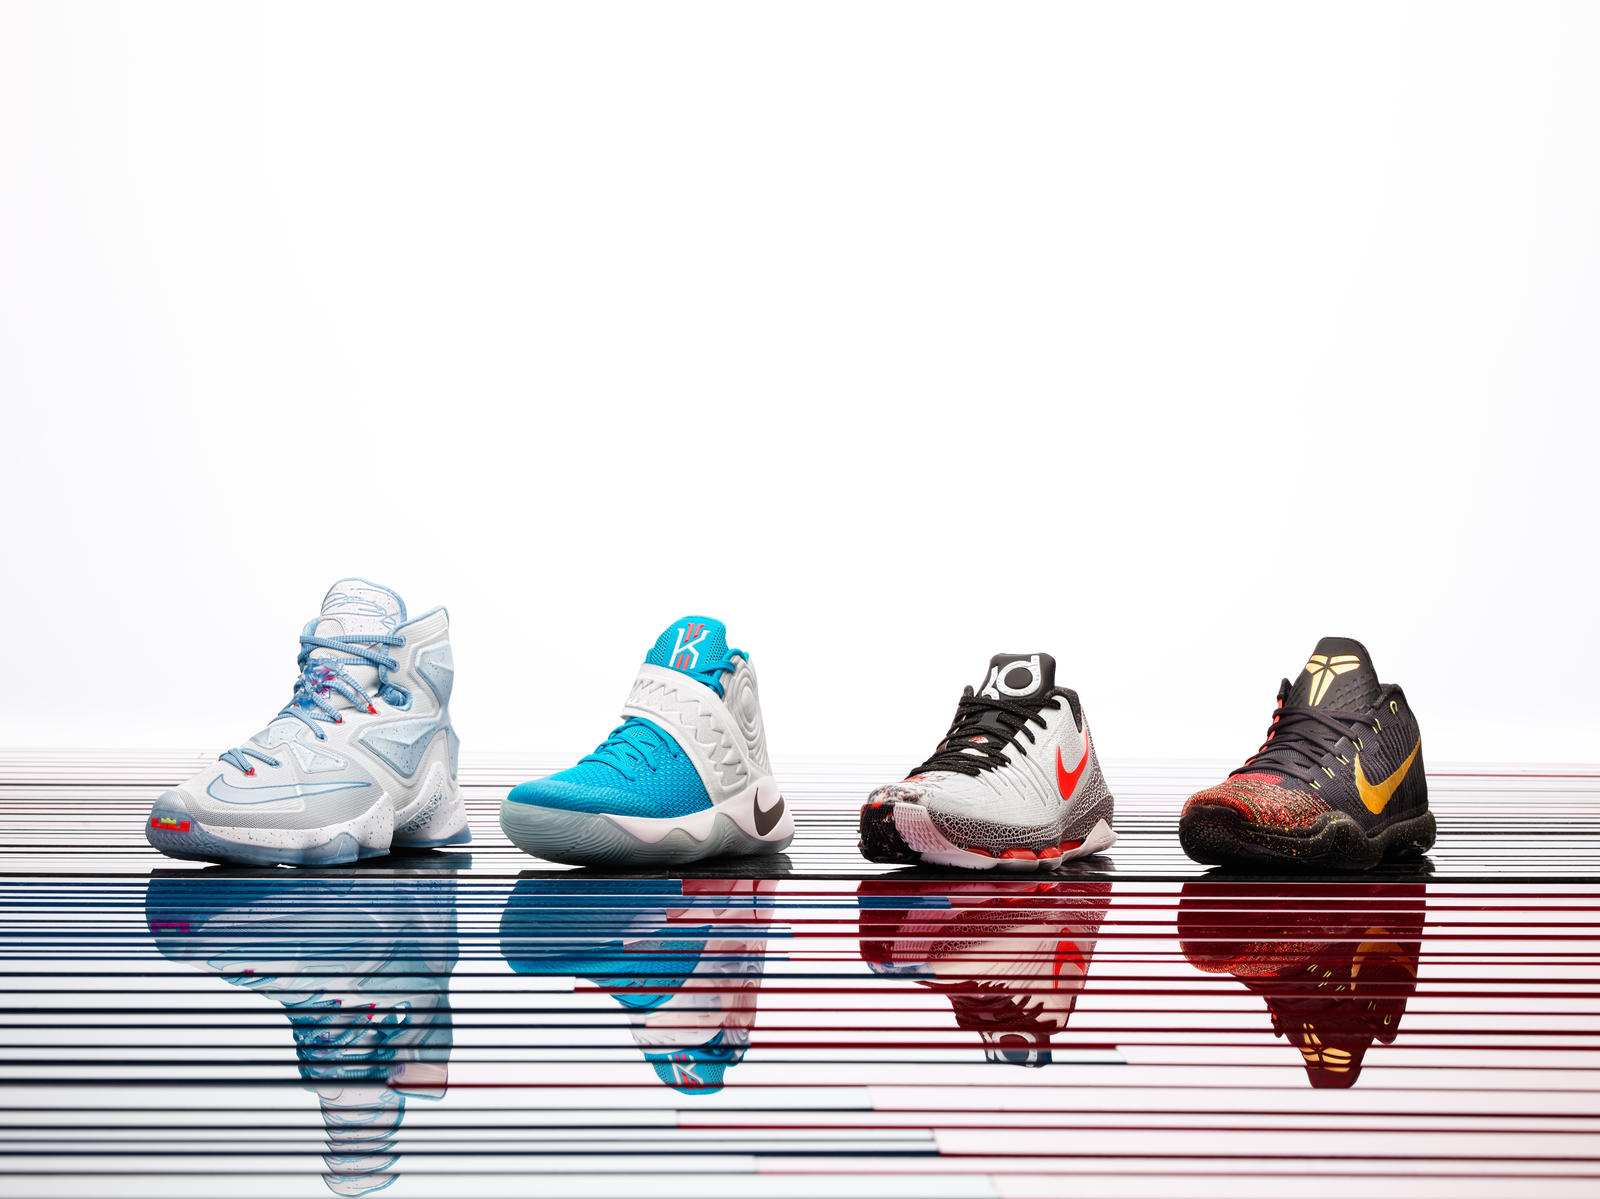 Fire and Ice: The 2015 Nike Basketball Christmas Collection - Nike ...